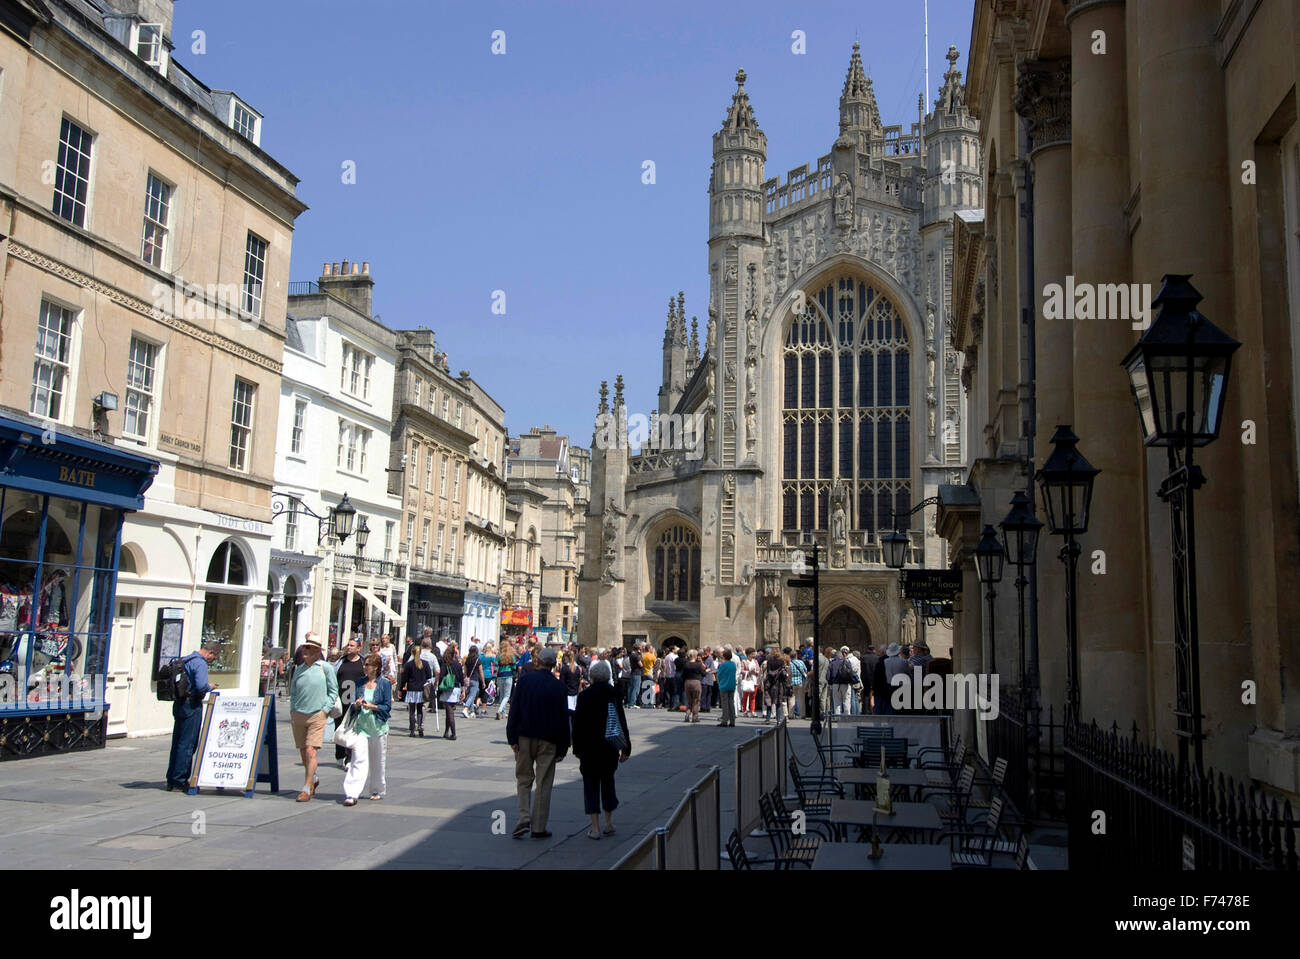 Pedestrian precinct in front of the west facing view of Bath Abbey, Bath, Somerset, England - Stock Image